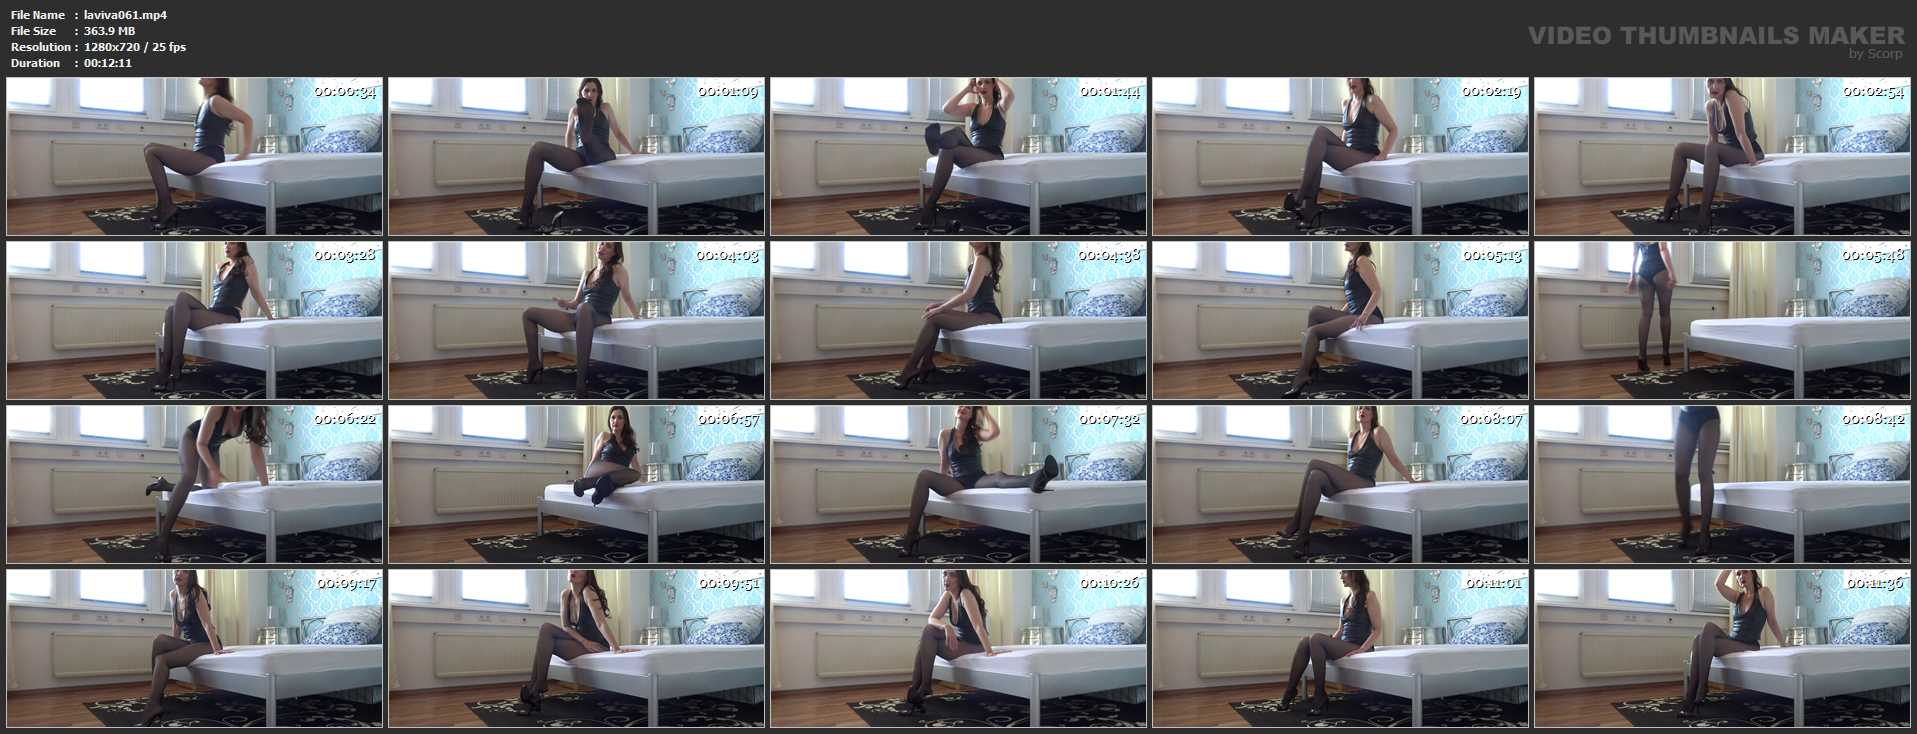 Lady Victoria Valente In Scene: Masturbation game for my chastity slave - CLIPS4SALE / LADYVICTORIAVALENTE - HD/720p/MP4